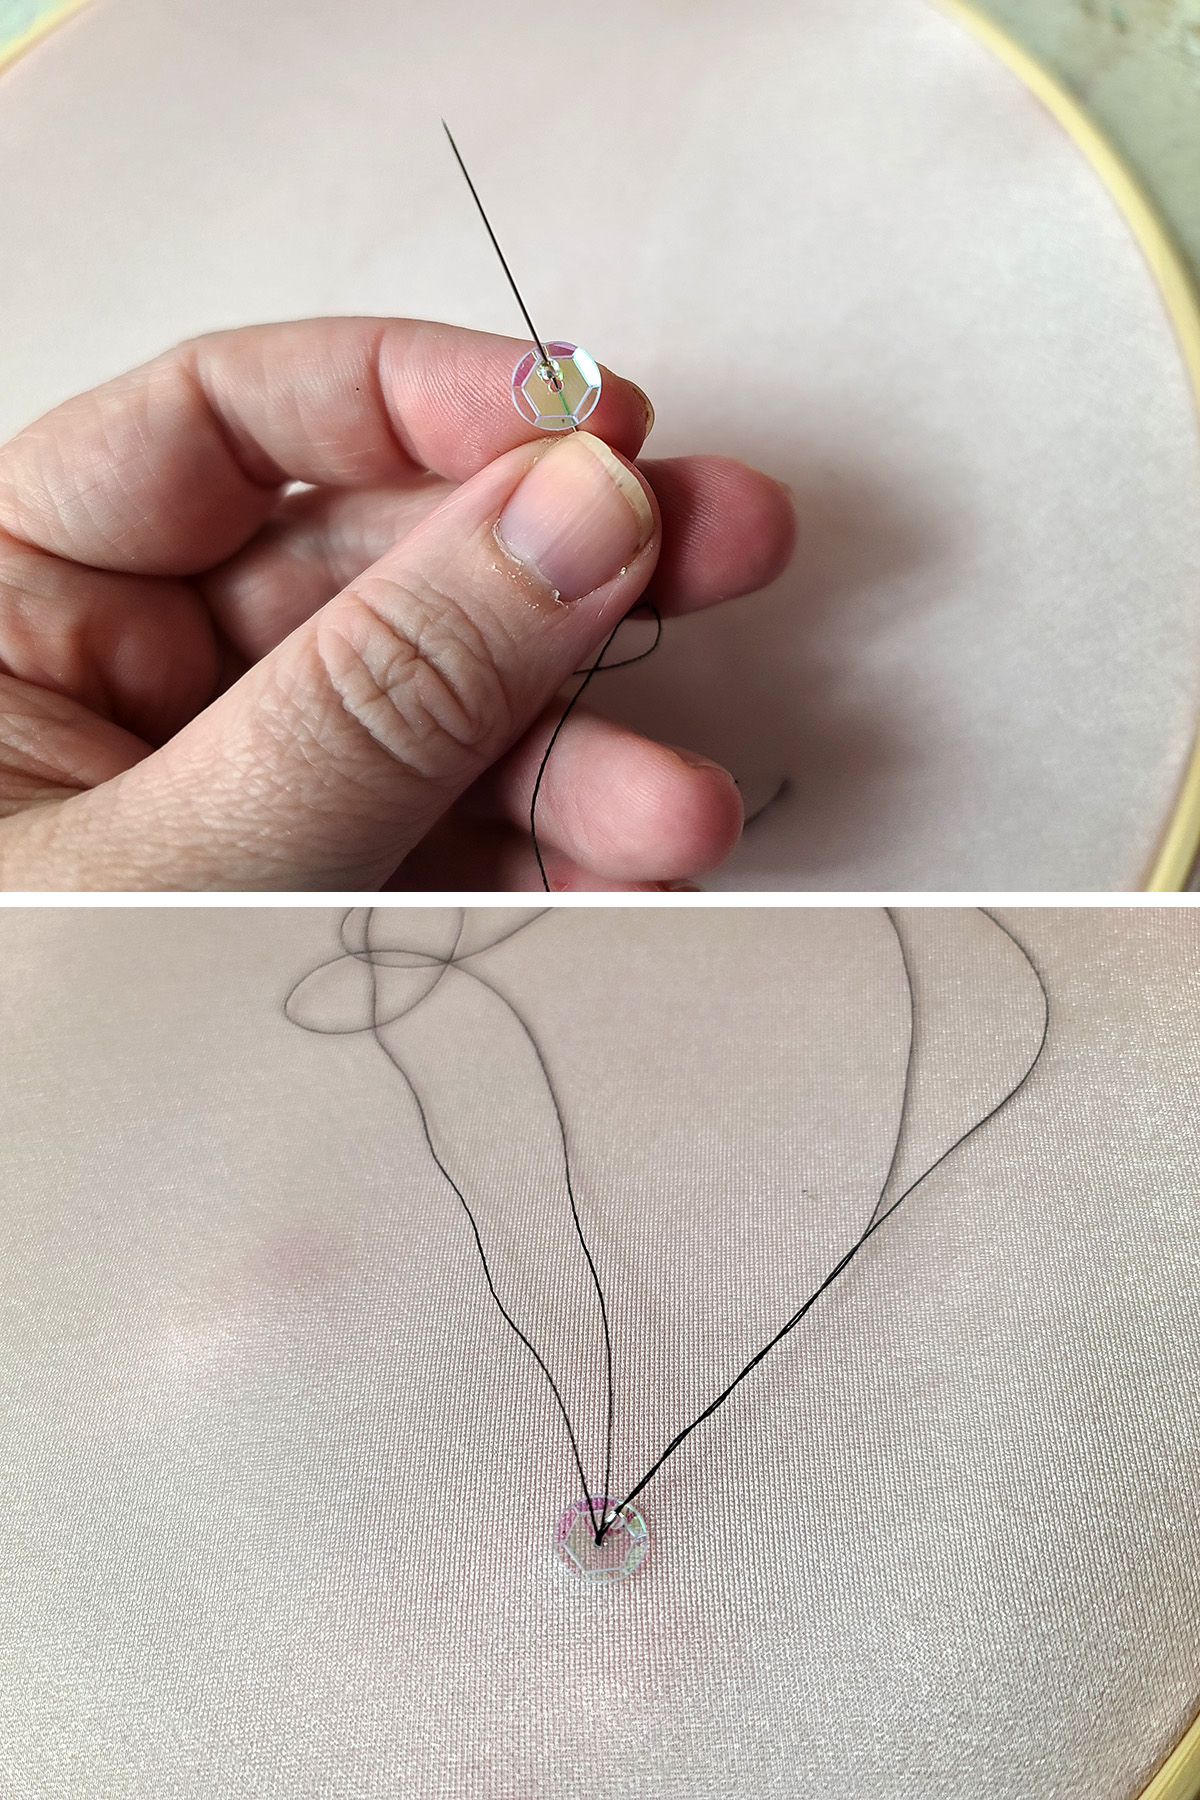 A two part image showing a needle and black thread are shown sewing a clear iridescent sequin to stretched pink spandex.